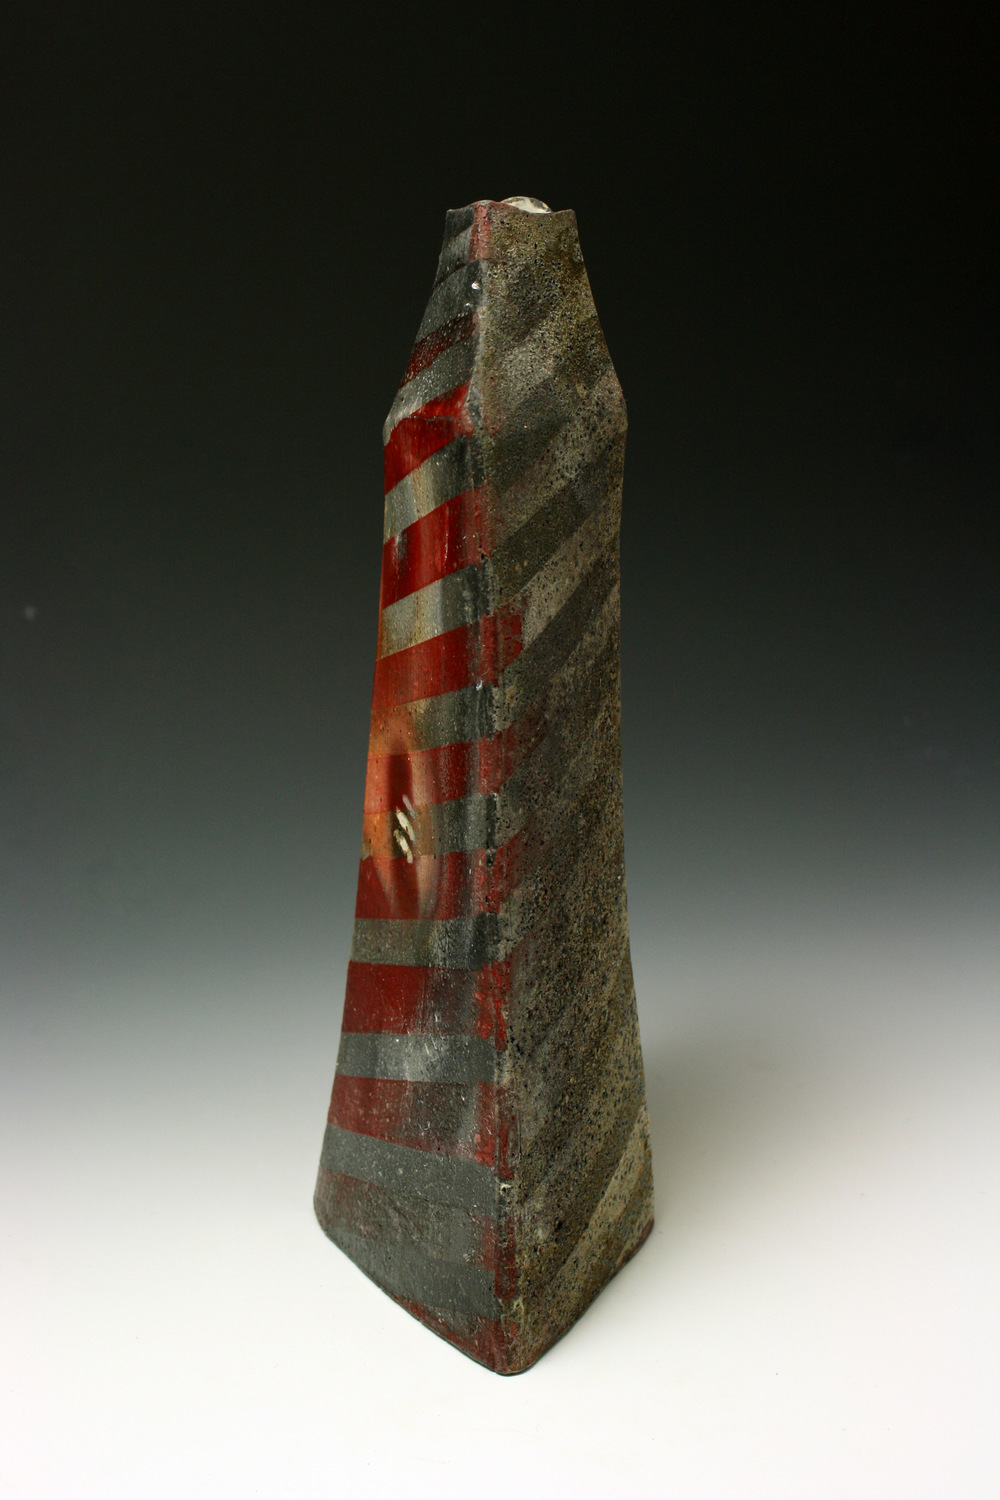 Lighthouse Vase (side view)